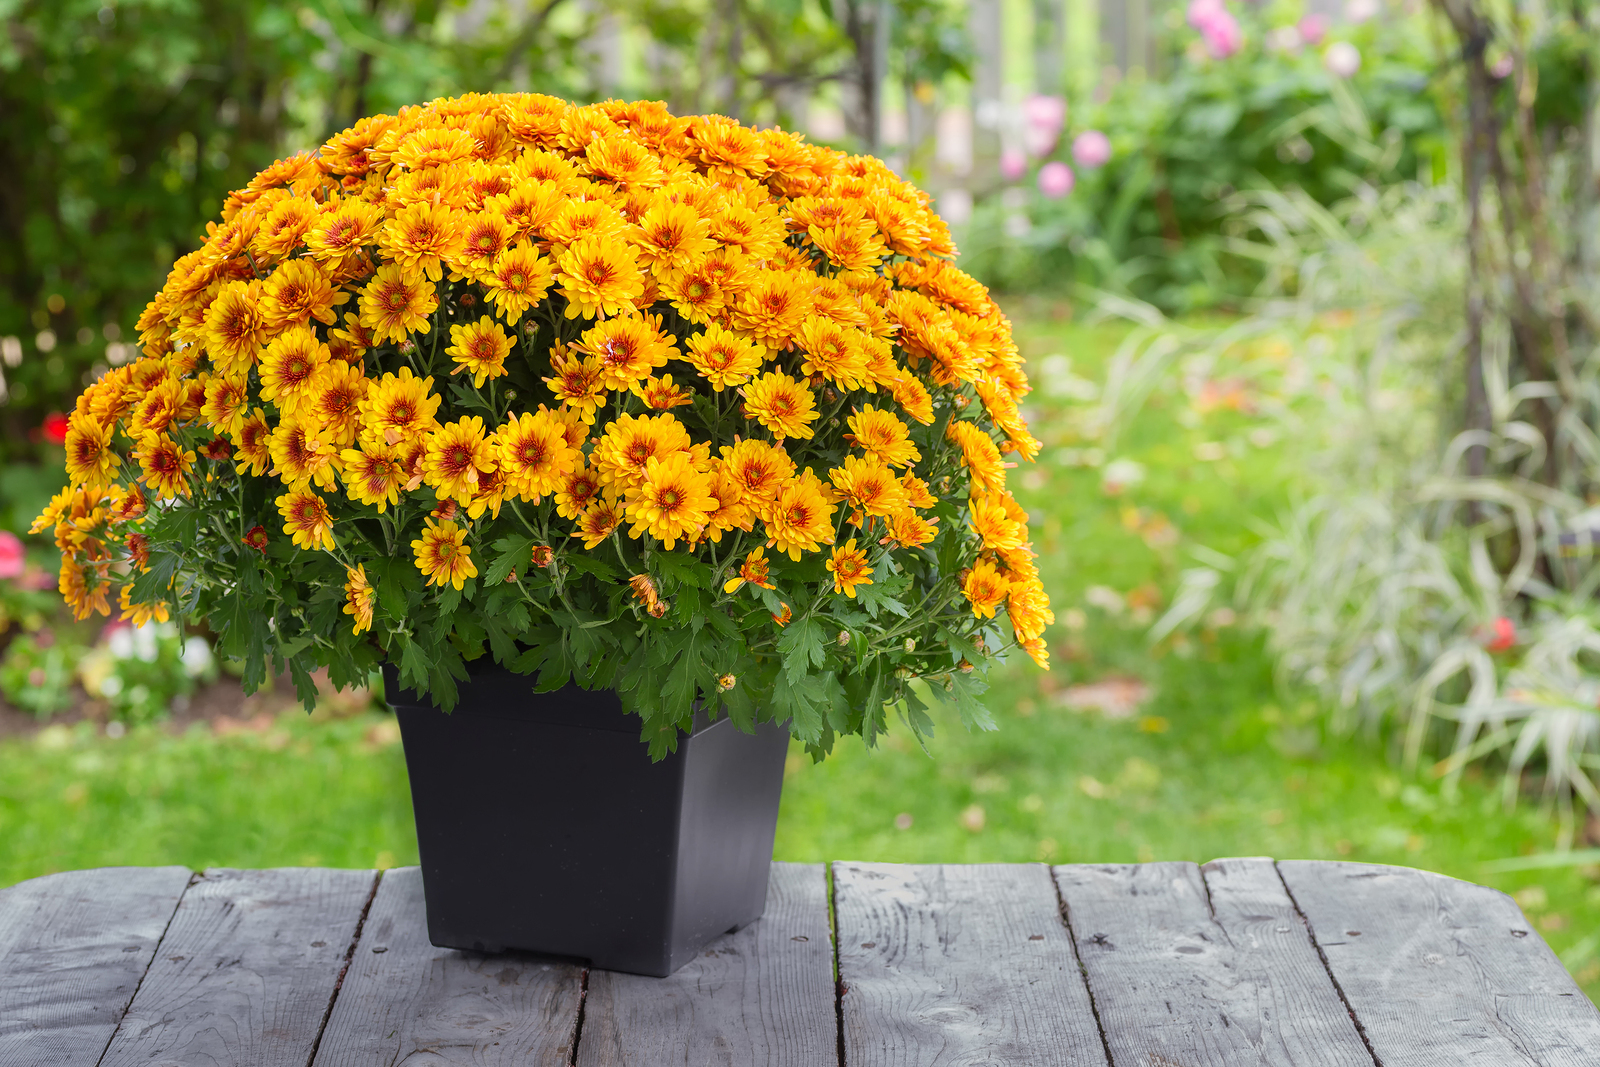 Fall Yard Care Tips: Beautify with New Trees, Shrubs, and Annuals